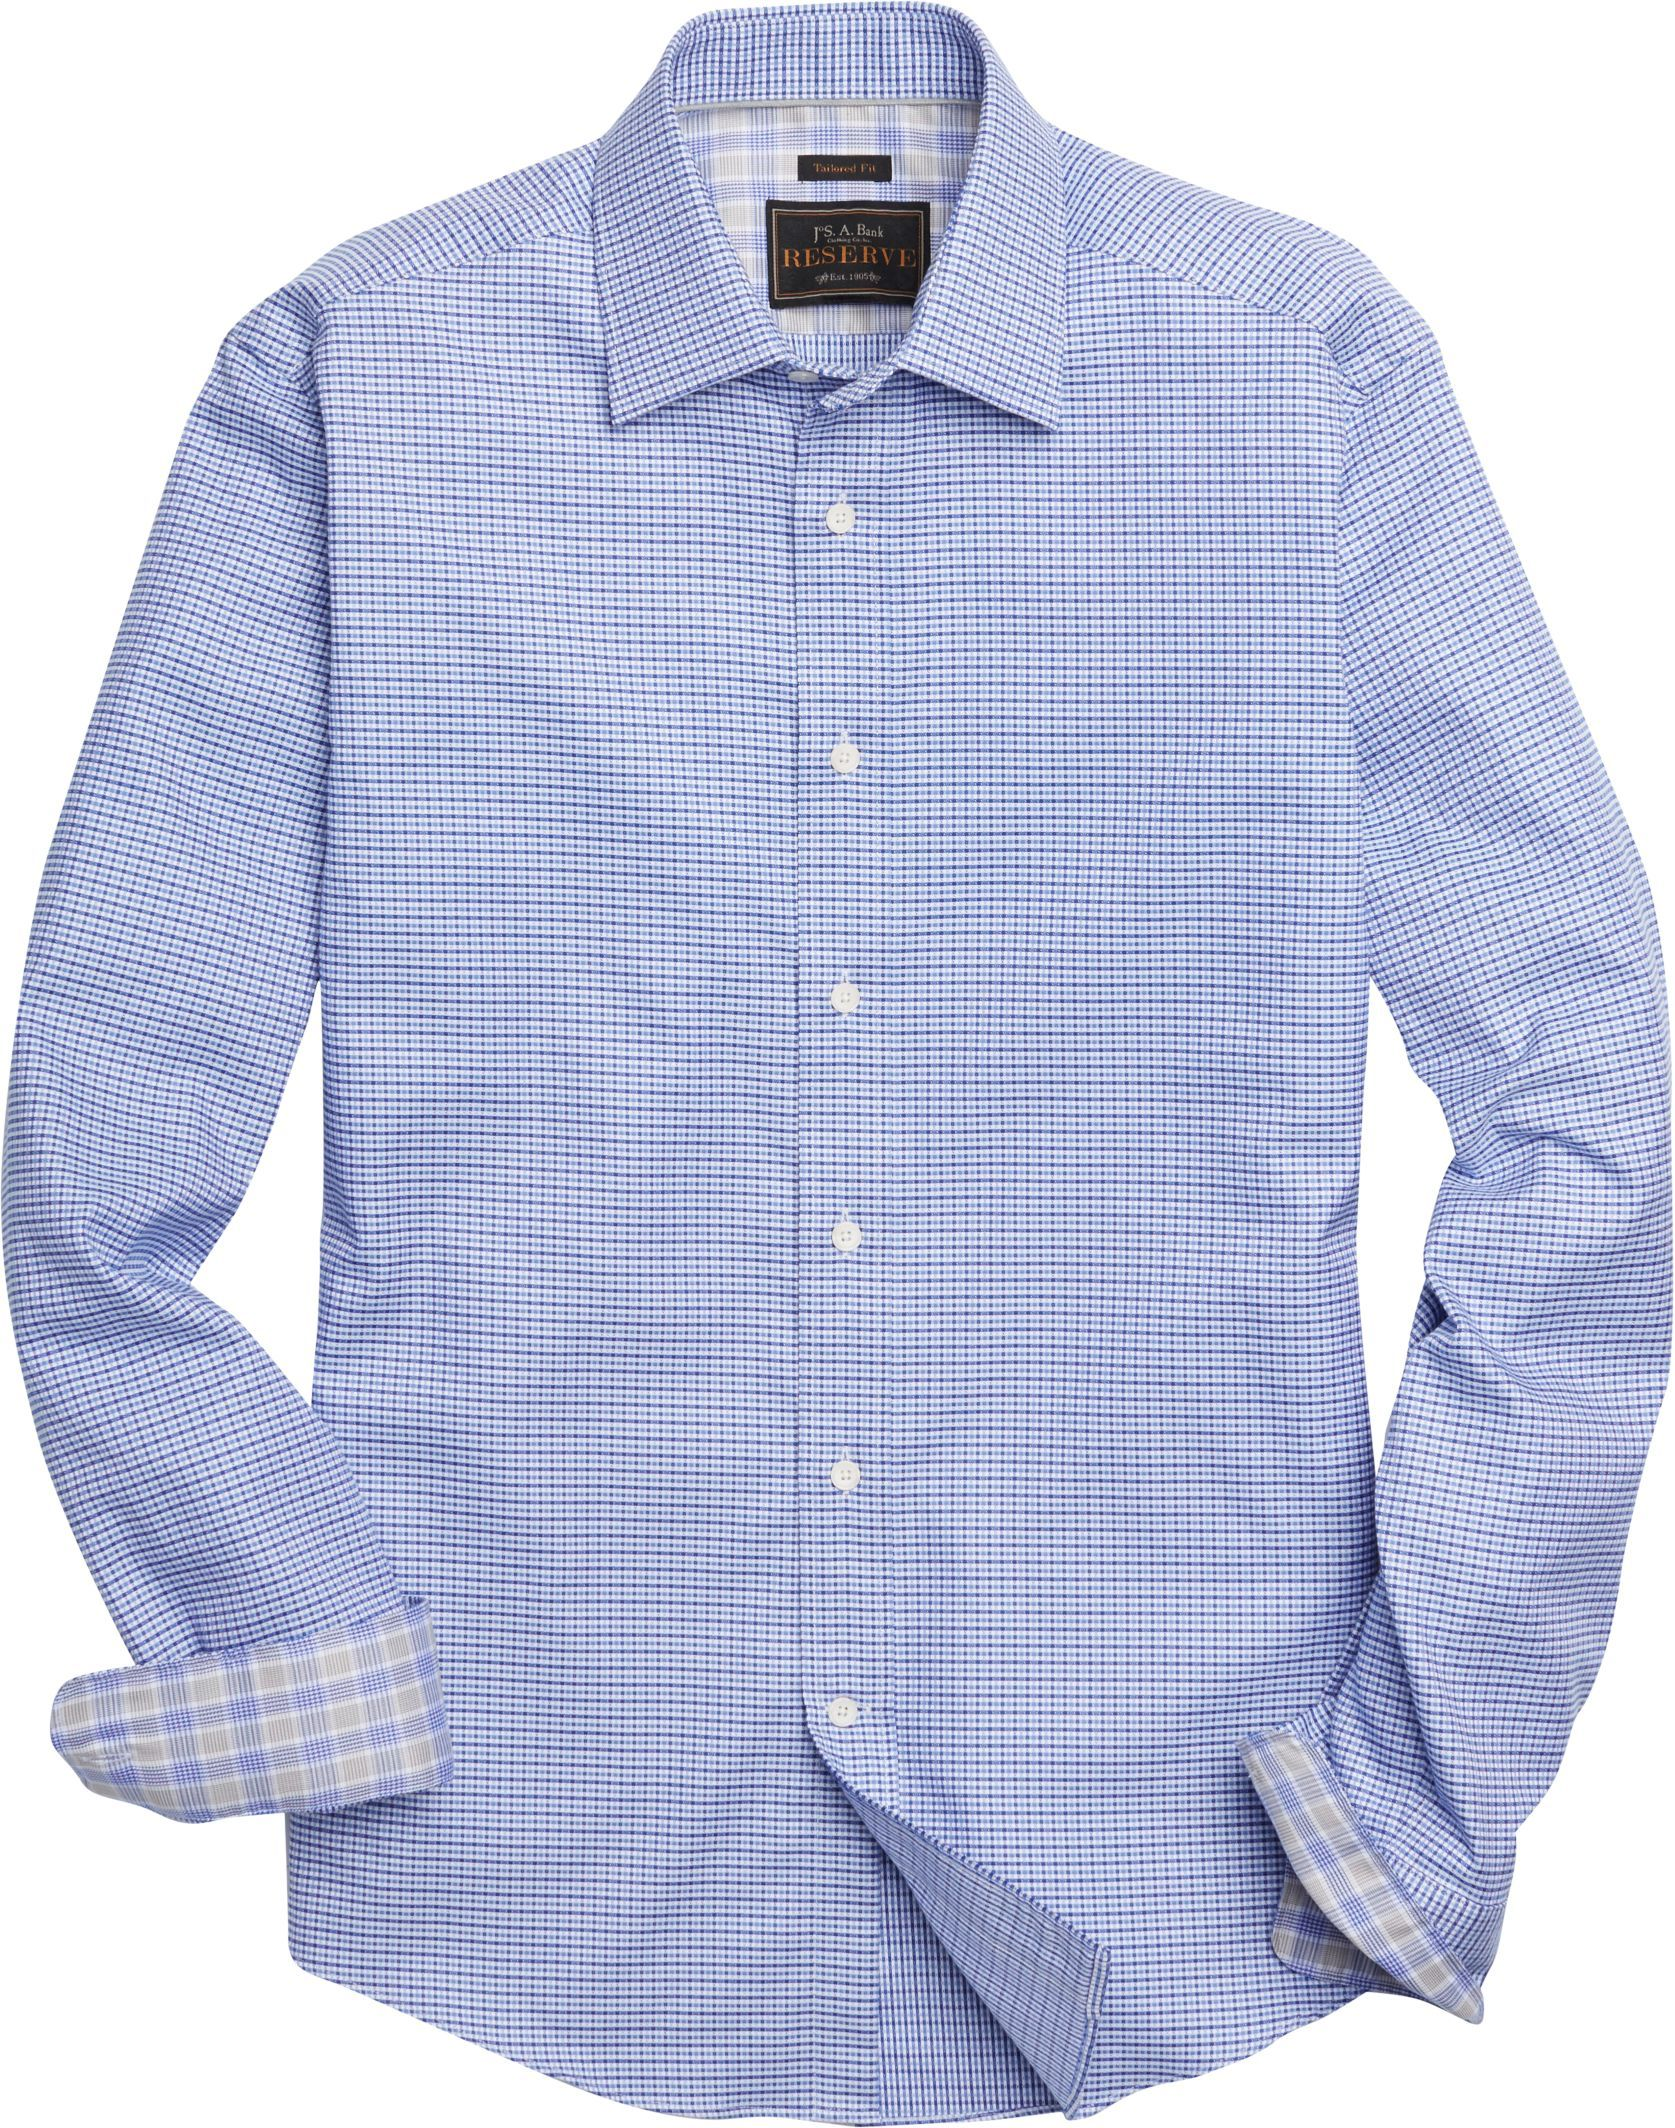 Reserve Collection Tailored Fit Spread Collar Check Sportshirt - Big & Tall